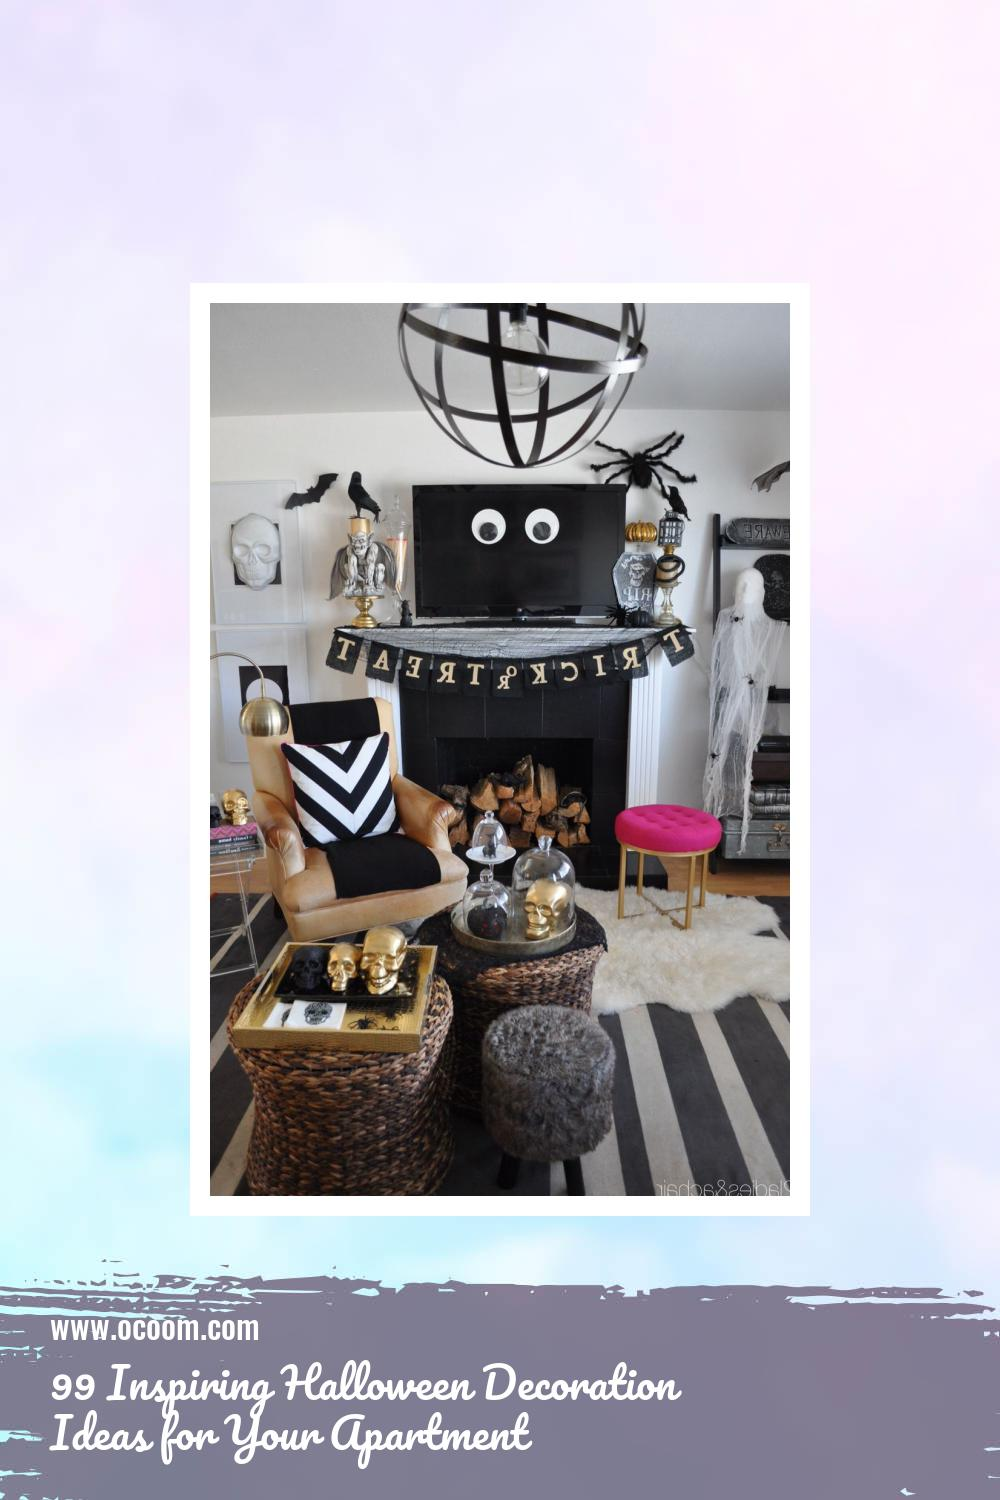 99 Inspiring Halloween Decoration Ideas for Your Apartment 66